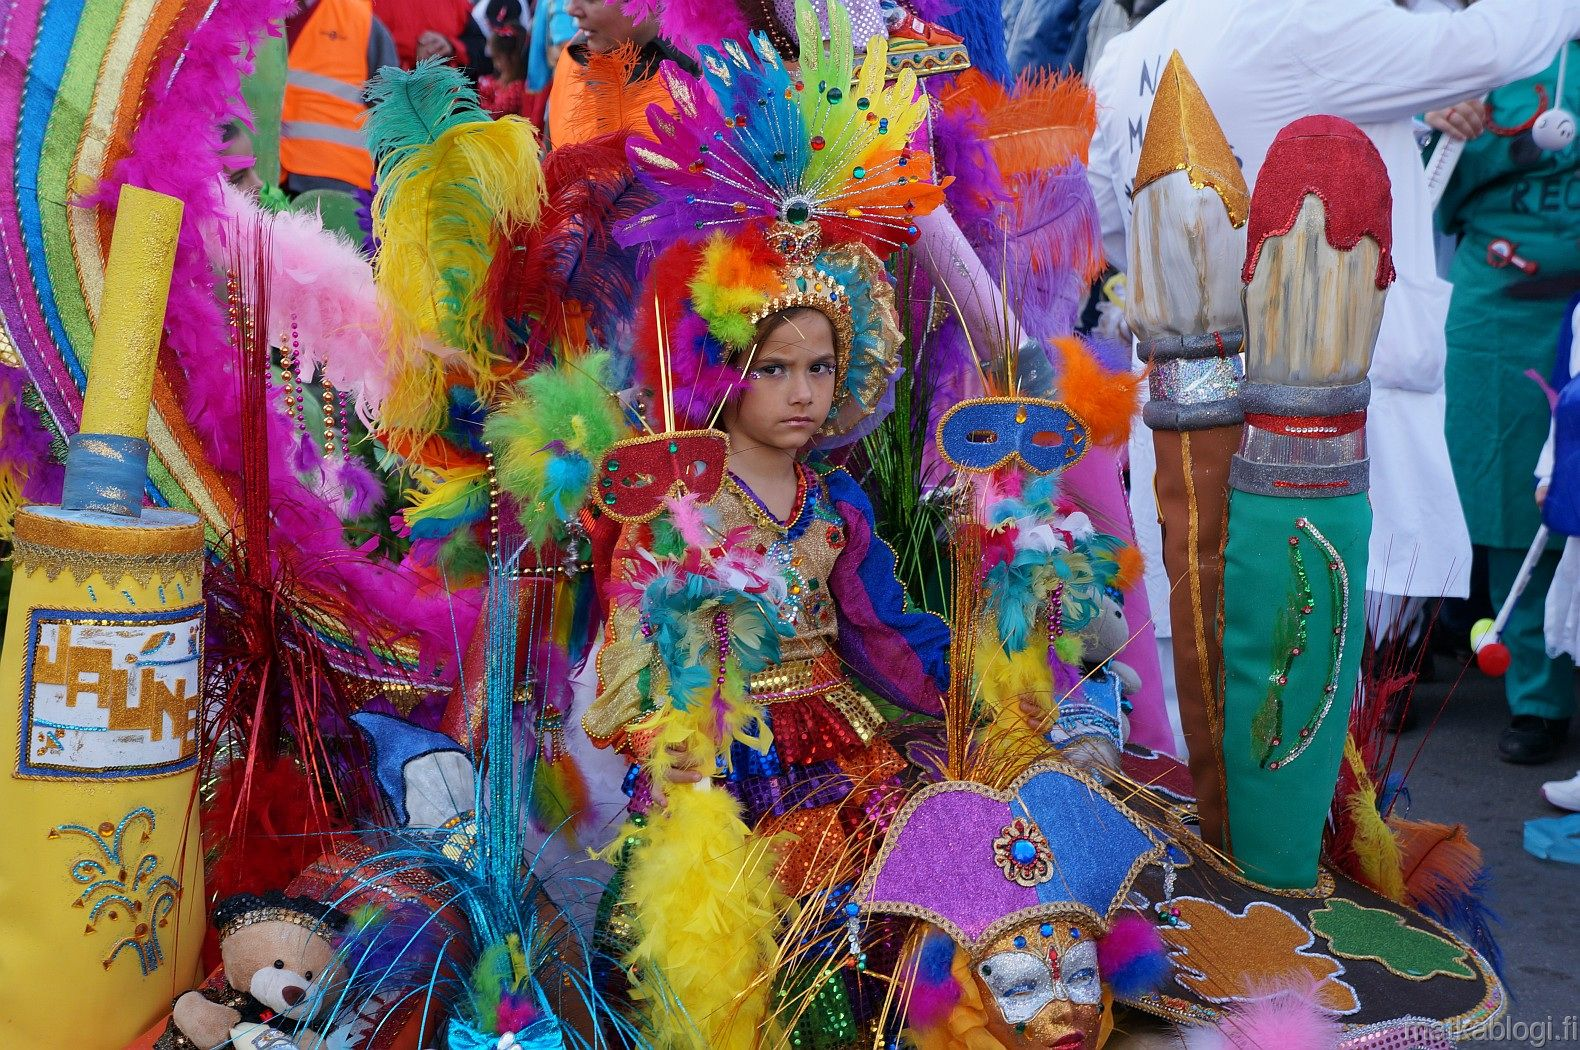 Image of child participating in the carnival